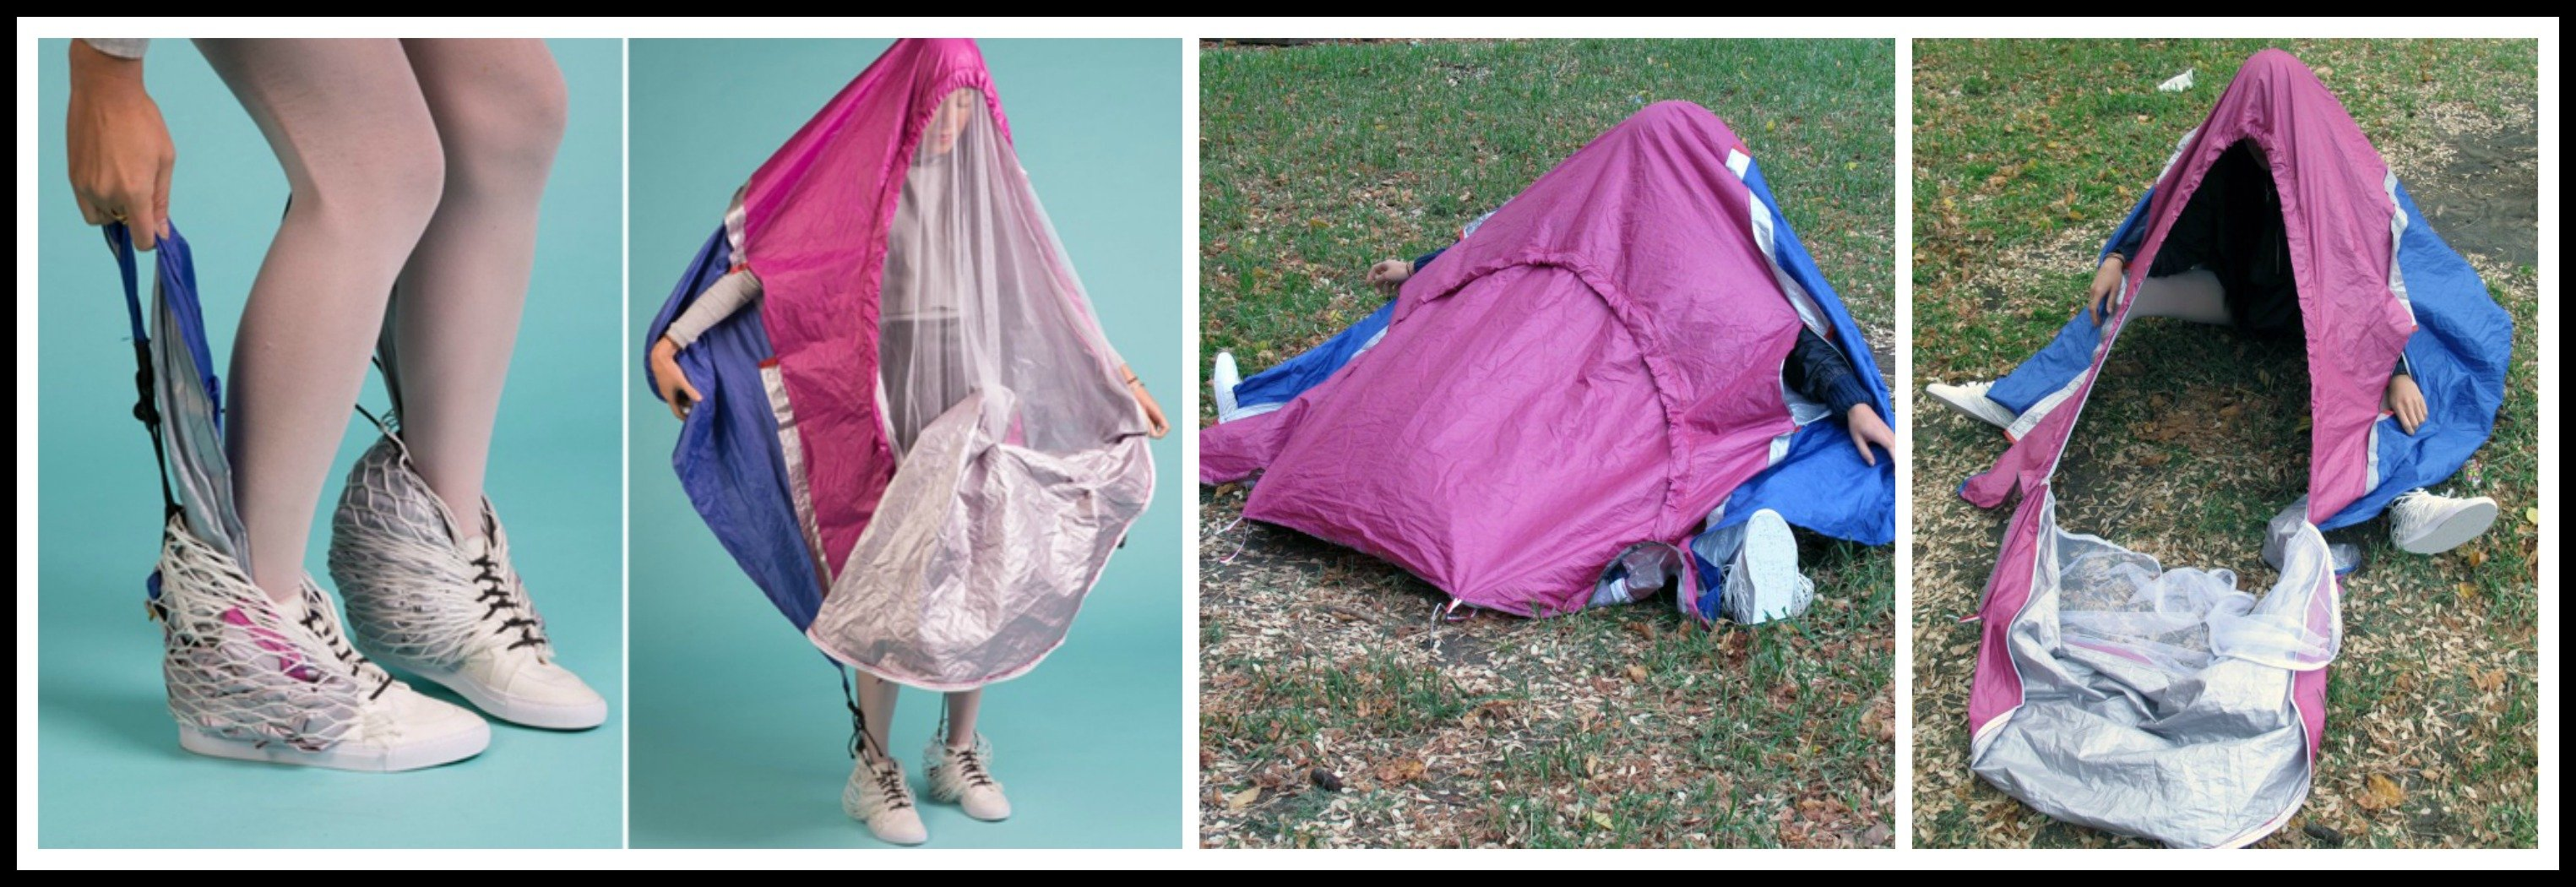 walking-tent-shelter-shoes